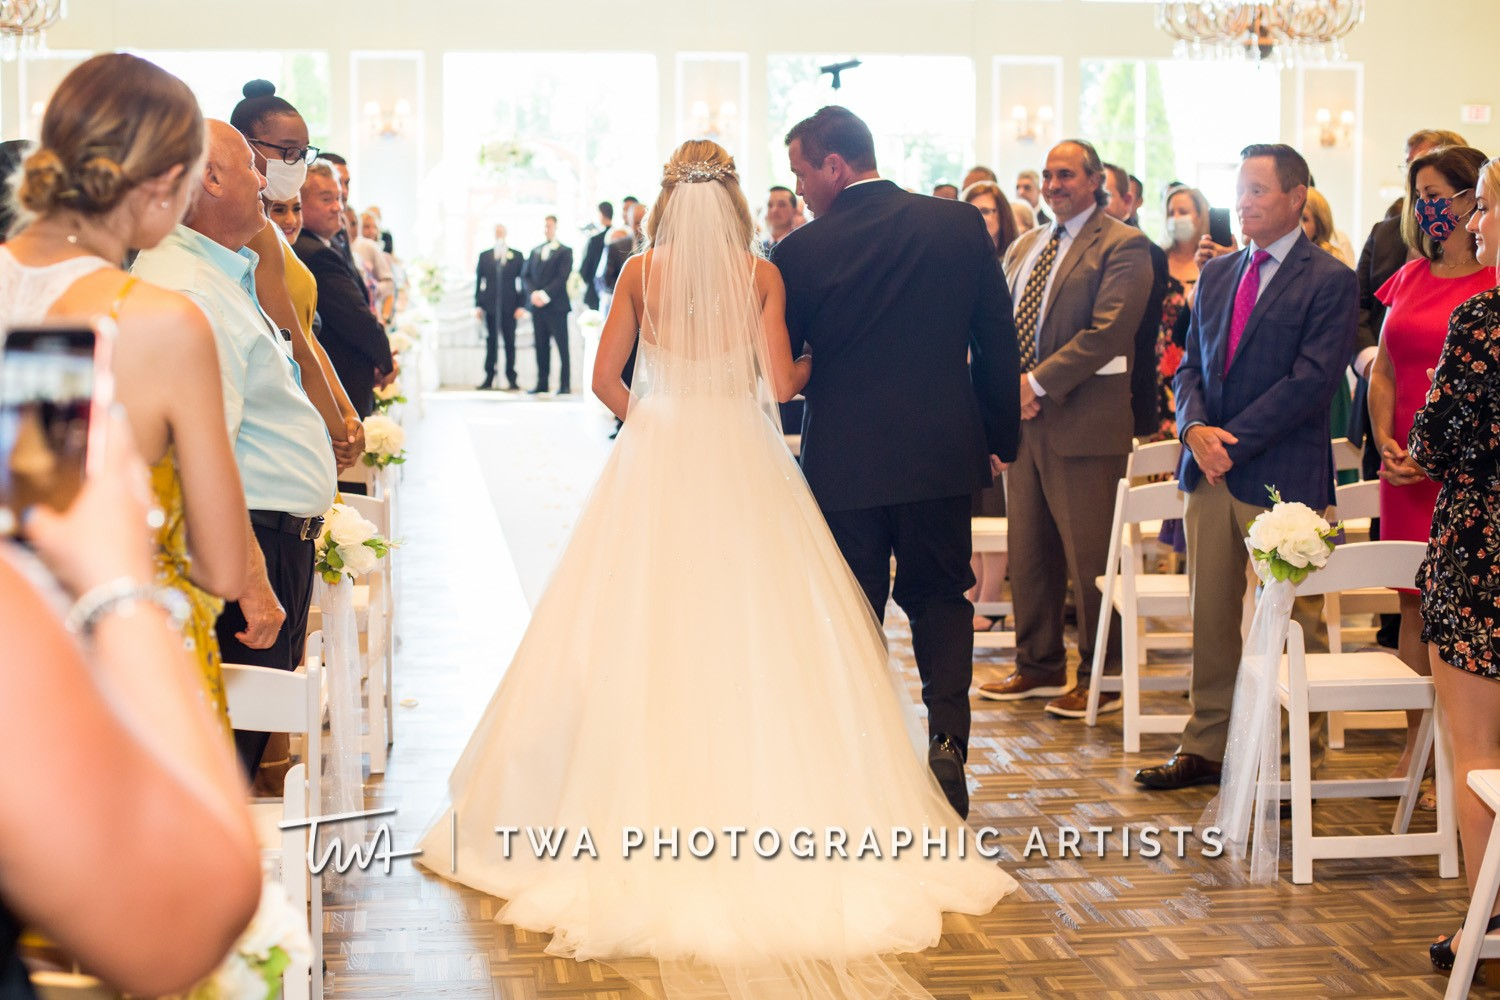 Chicago-Wedding-Photographer-TWA-Photographic-Artists-DiNolfo_s-Banquets_Augustine_Evans_MJ_WK-0594